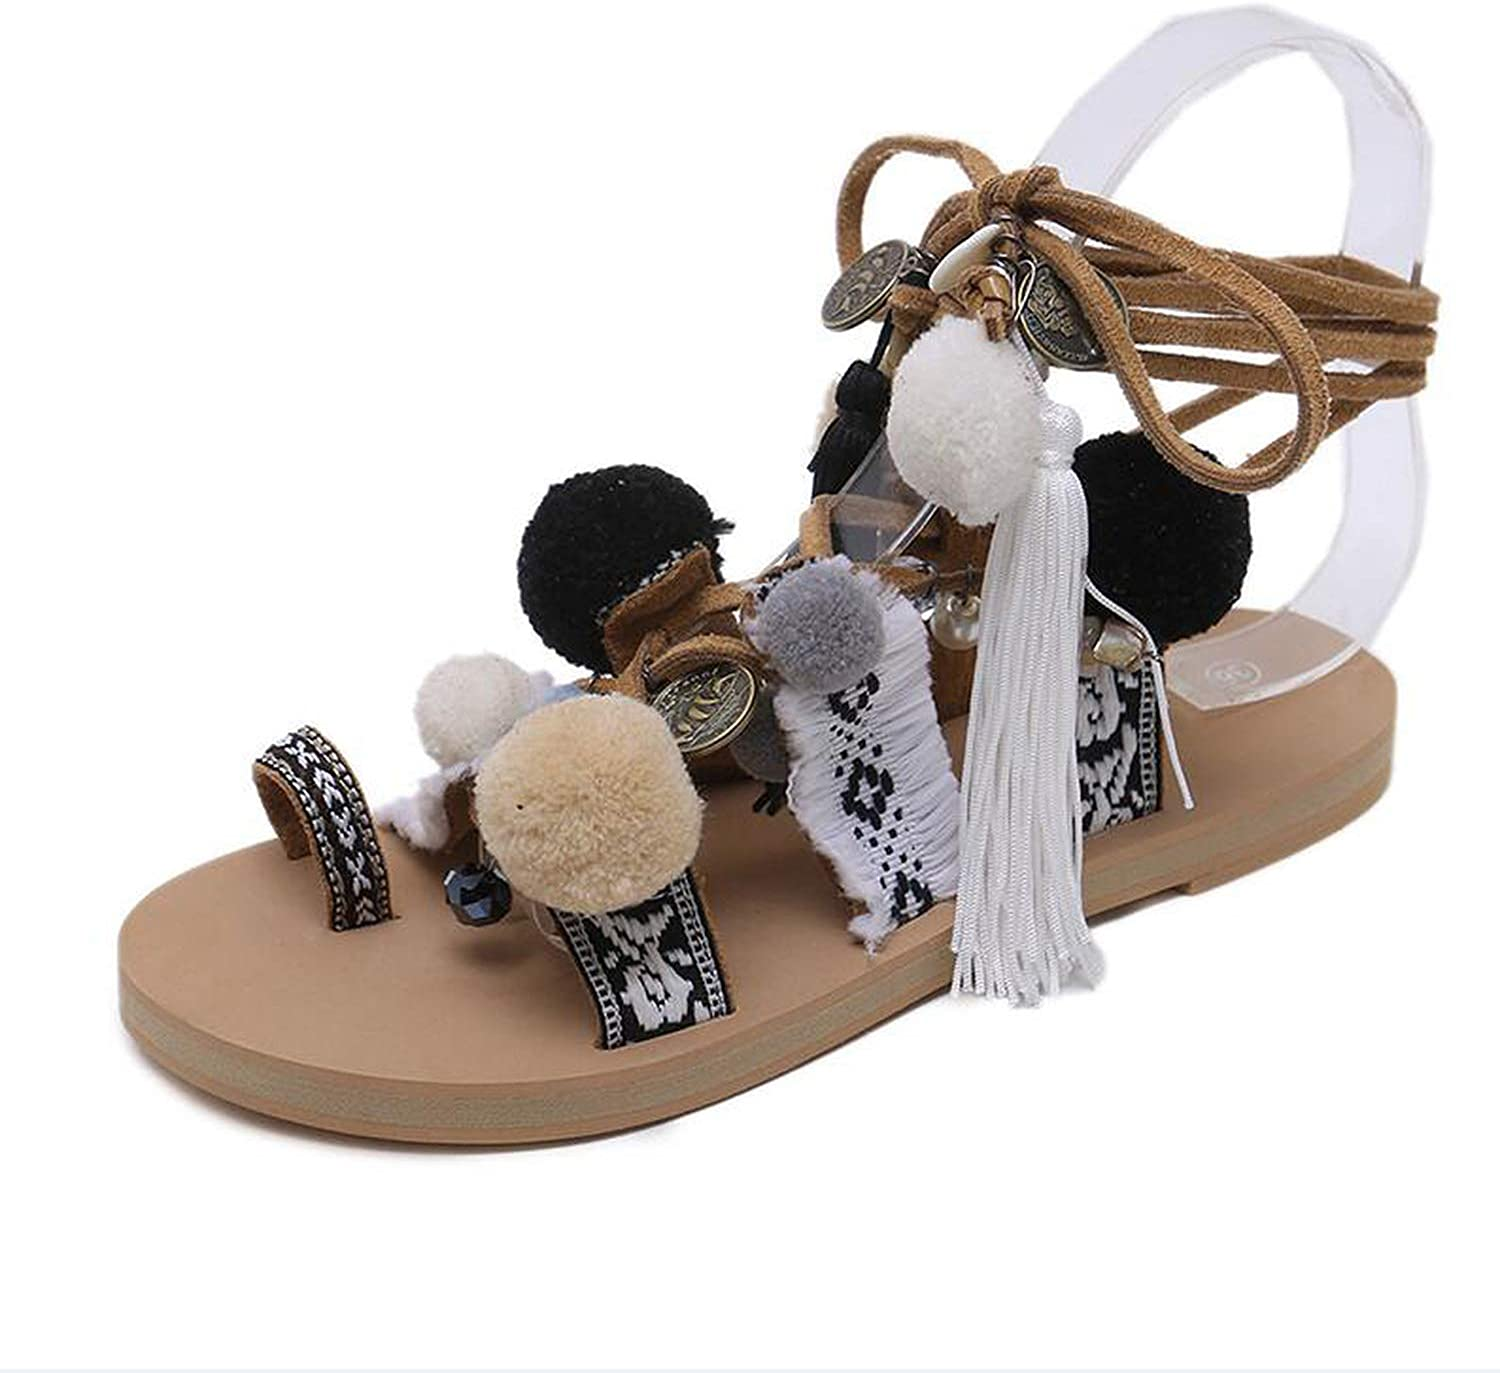 Yuren Snow Bohemia Fringed Pompoms Lady Gladiator Fringed Sandals shoes Cross Strap tie up Women Flats Sandals